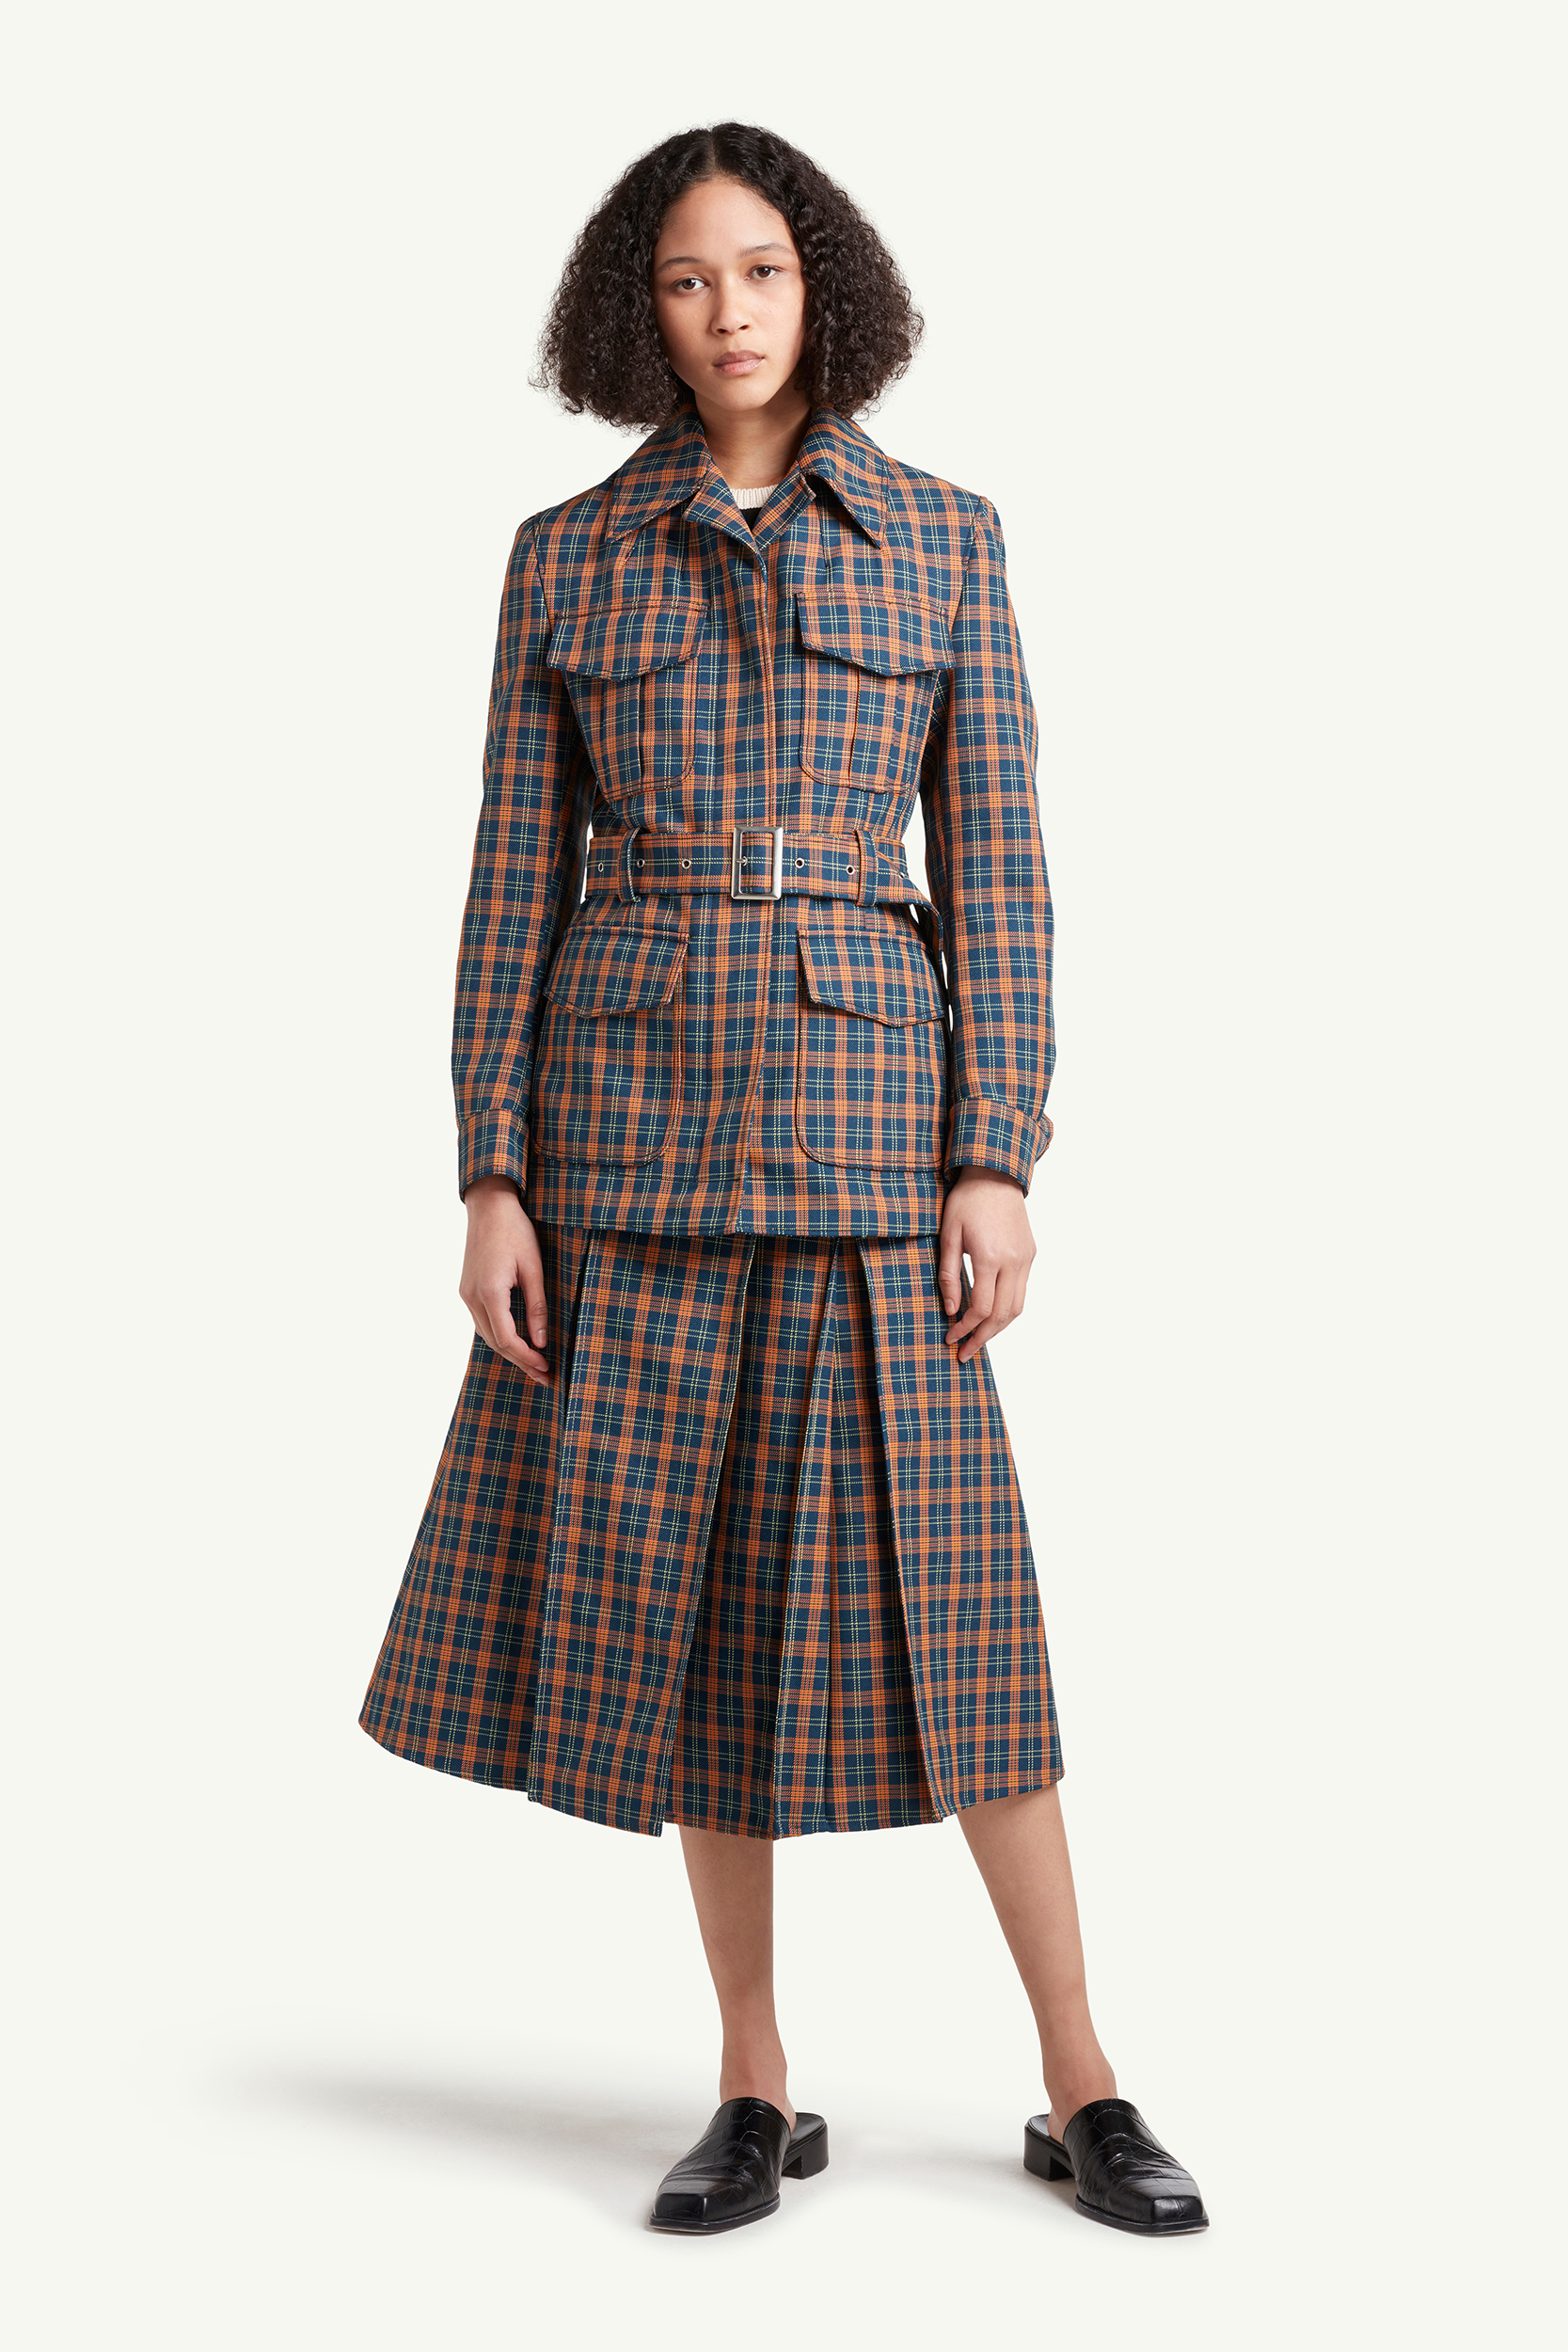 Womenswear model wearing light grey, brown checkered jacket and skirt by Wales Bonner | e-Commerce Photography London | LRP